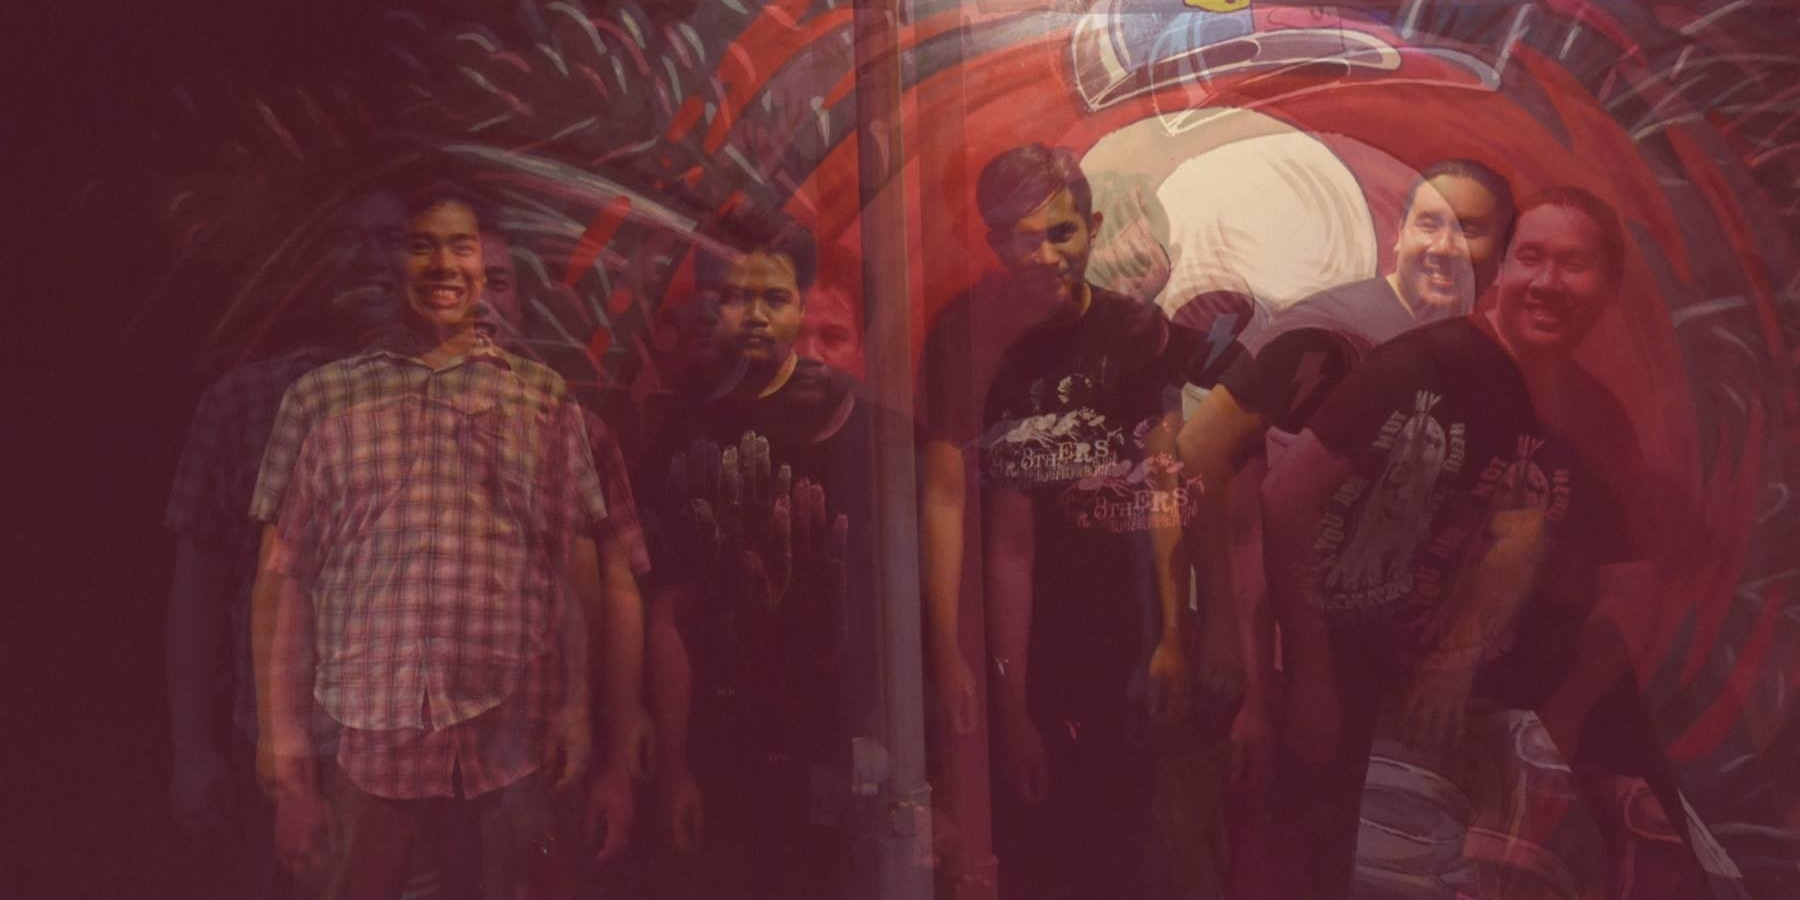 LISTEN: Beast Jesus' debut EP riotously reassembles hardcore, shoegaze and post-metal